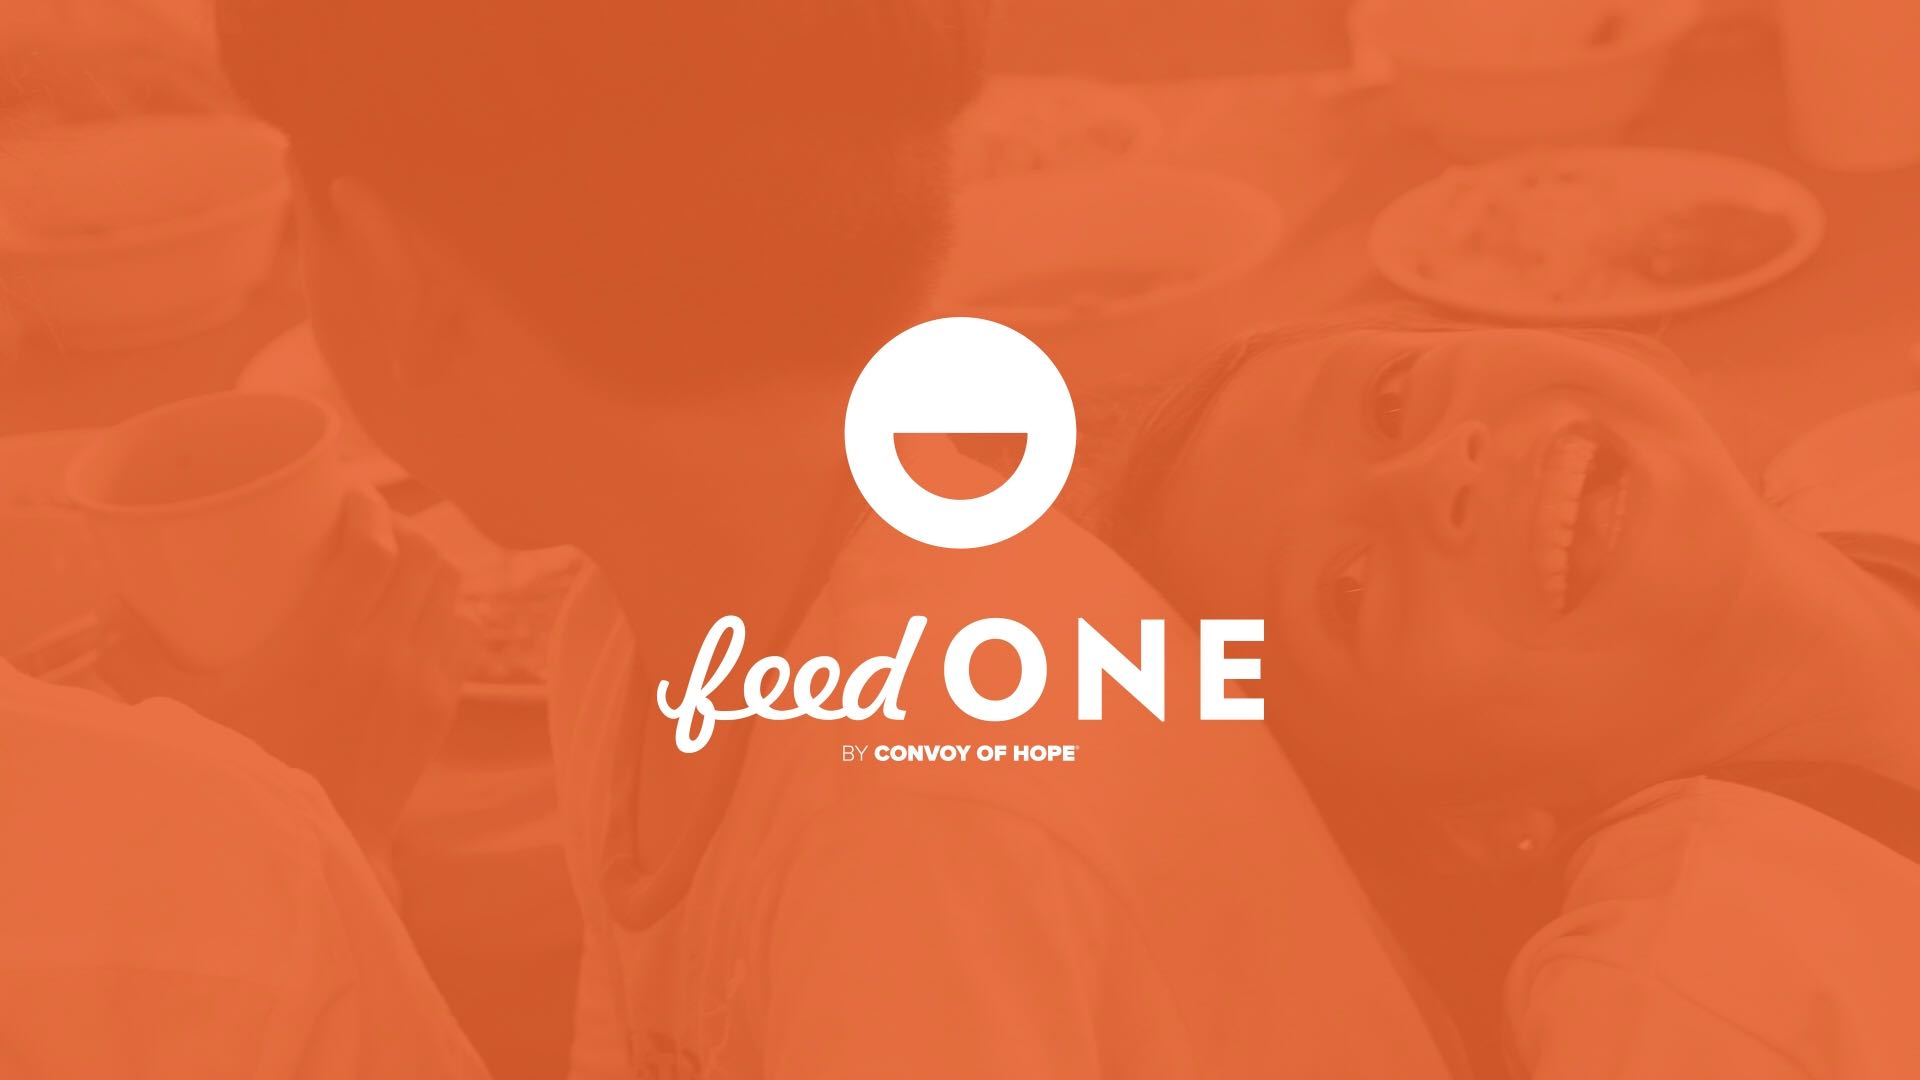 feedONE - Logo Graphic.JPG